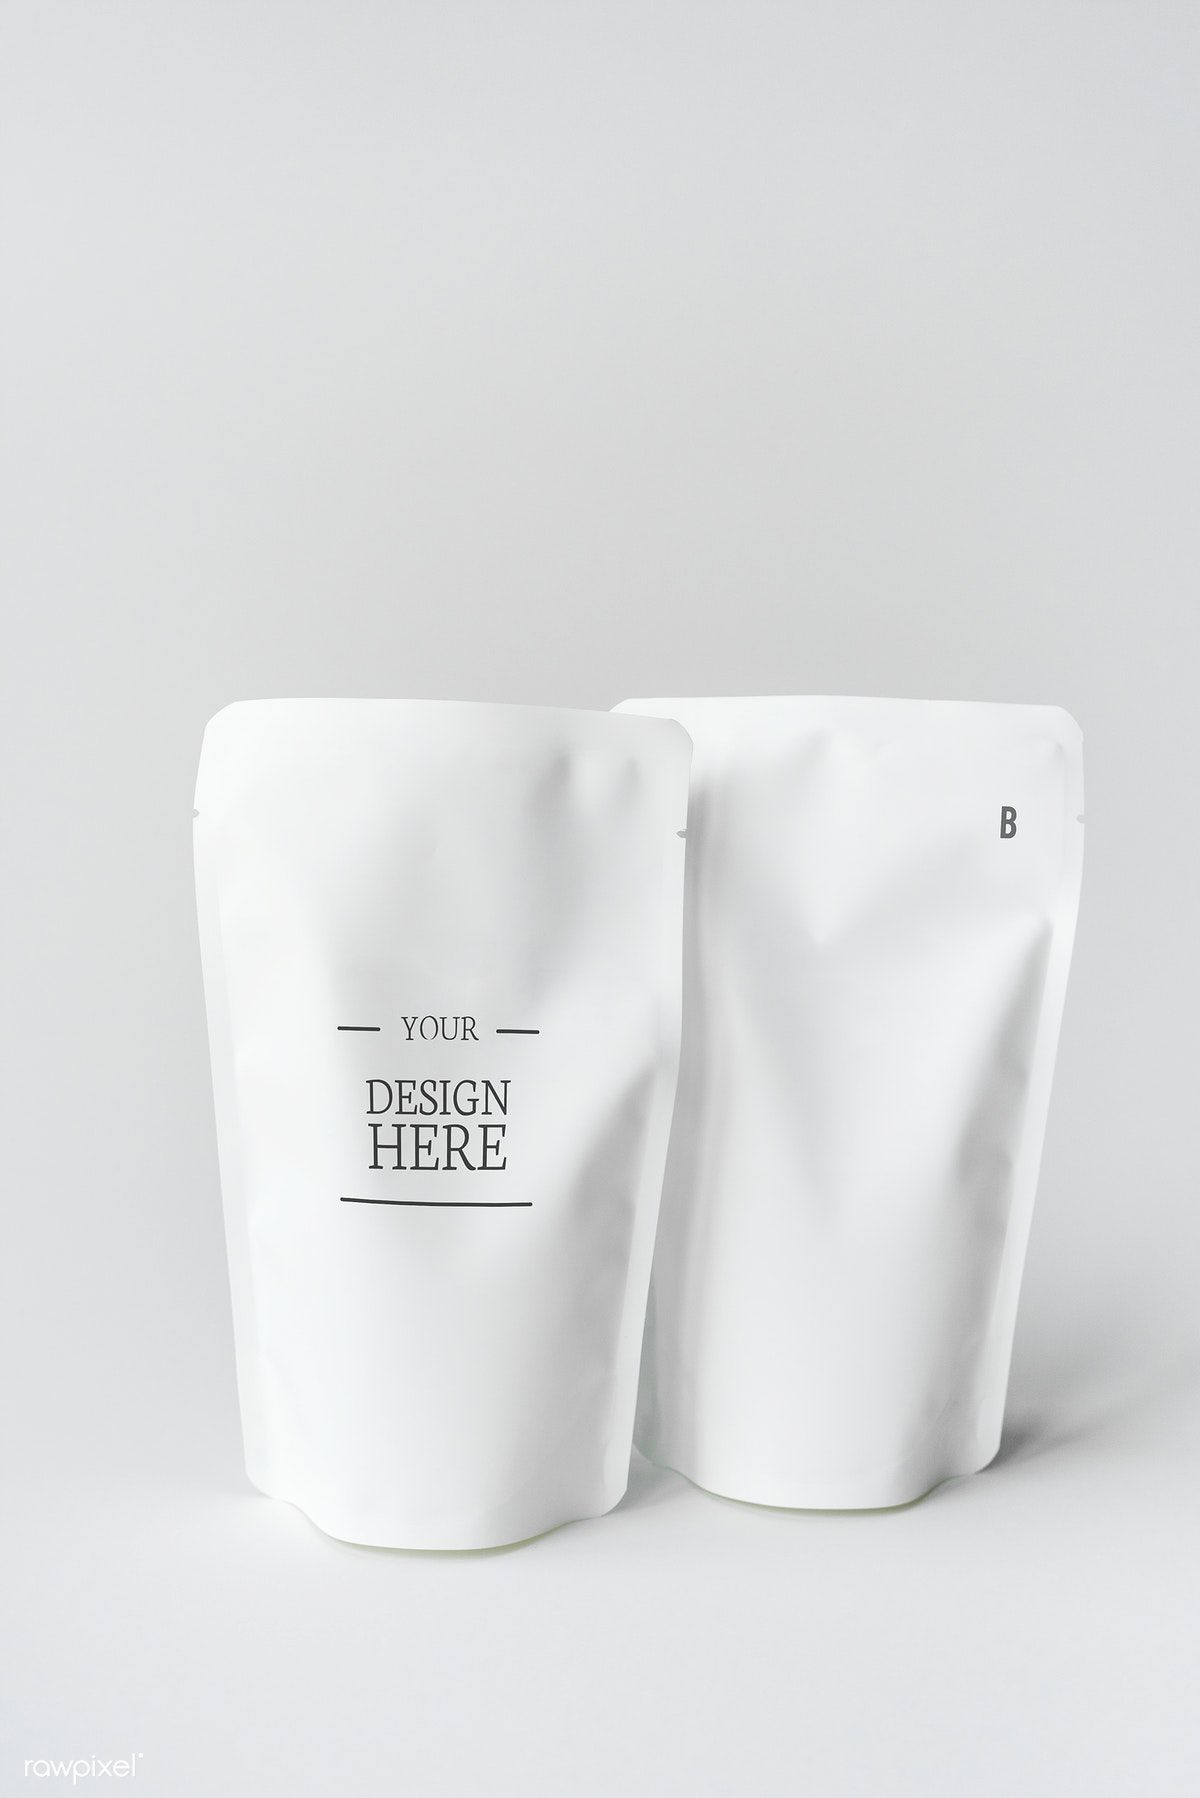 Download Download Premium Psd Of Sachet Mockup 296341 Design Mockup Free Coffee Poster Design Pouch Packaging